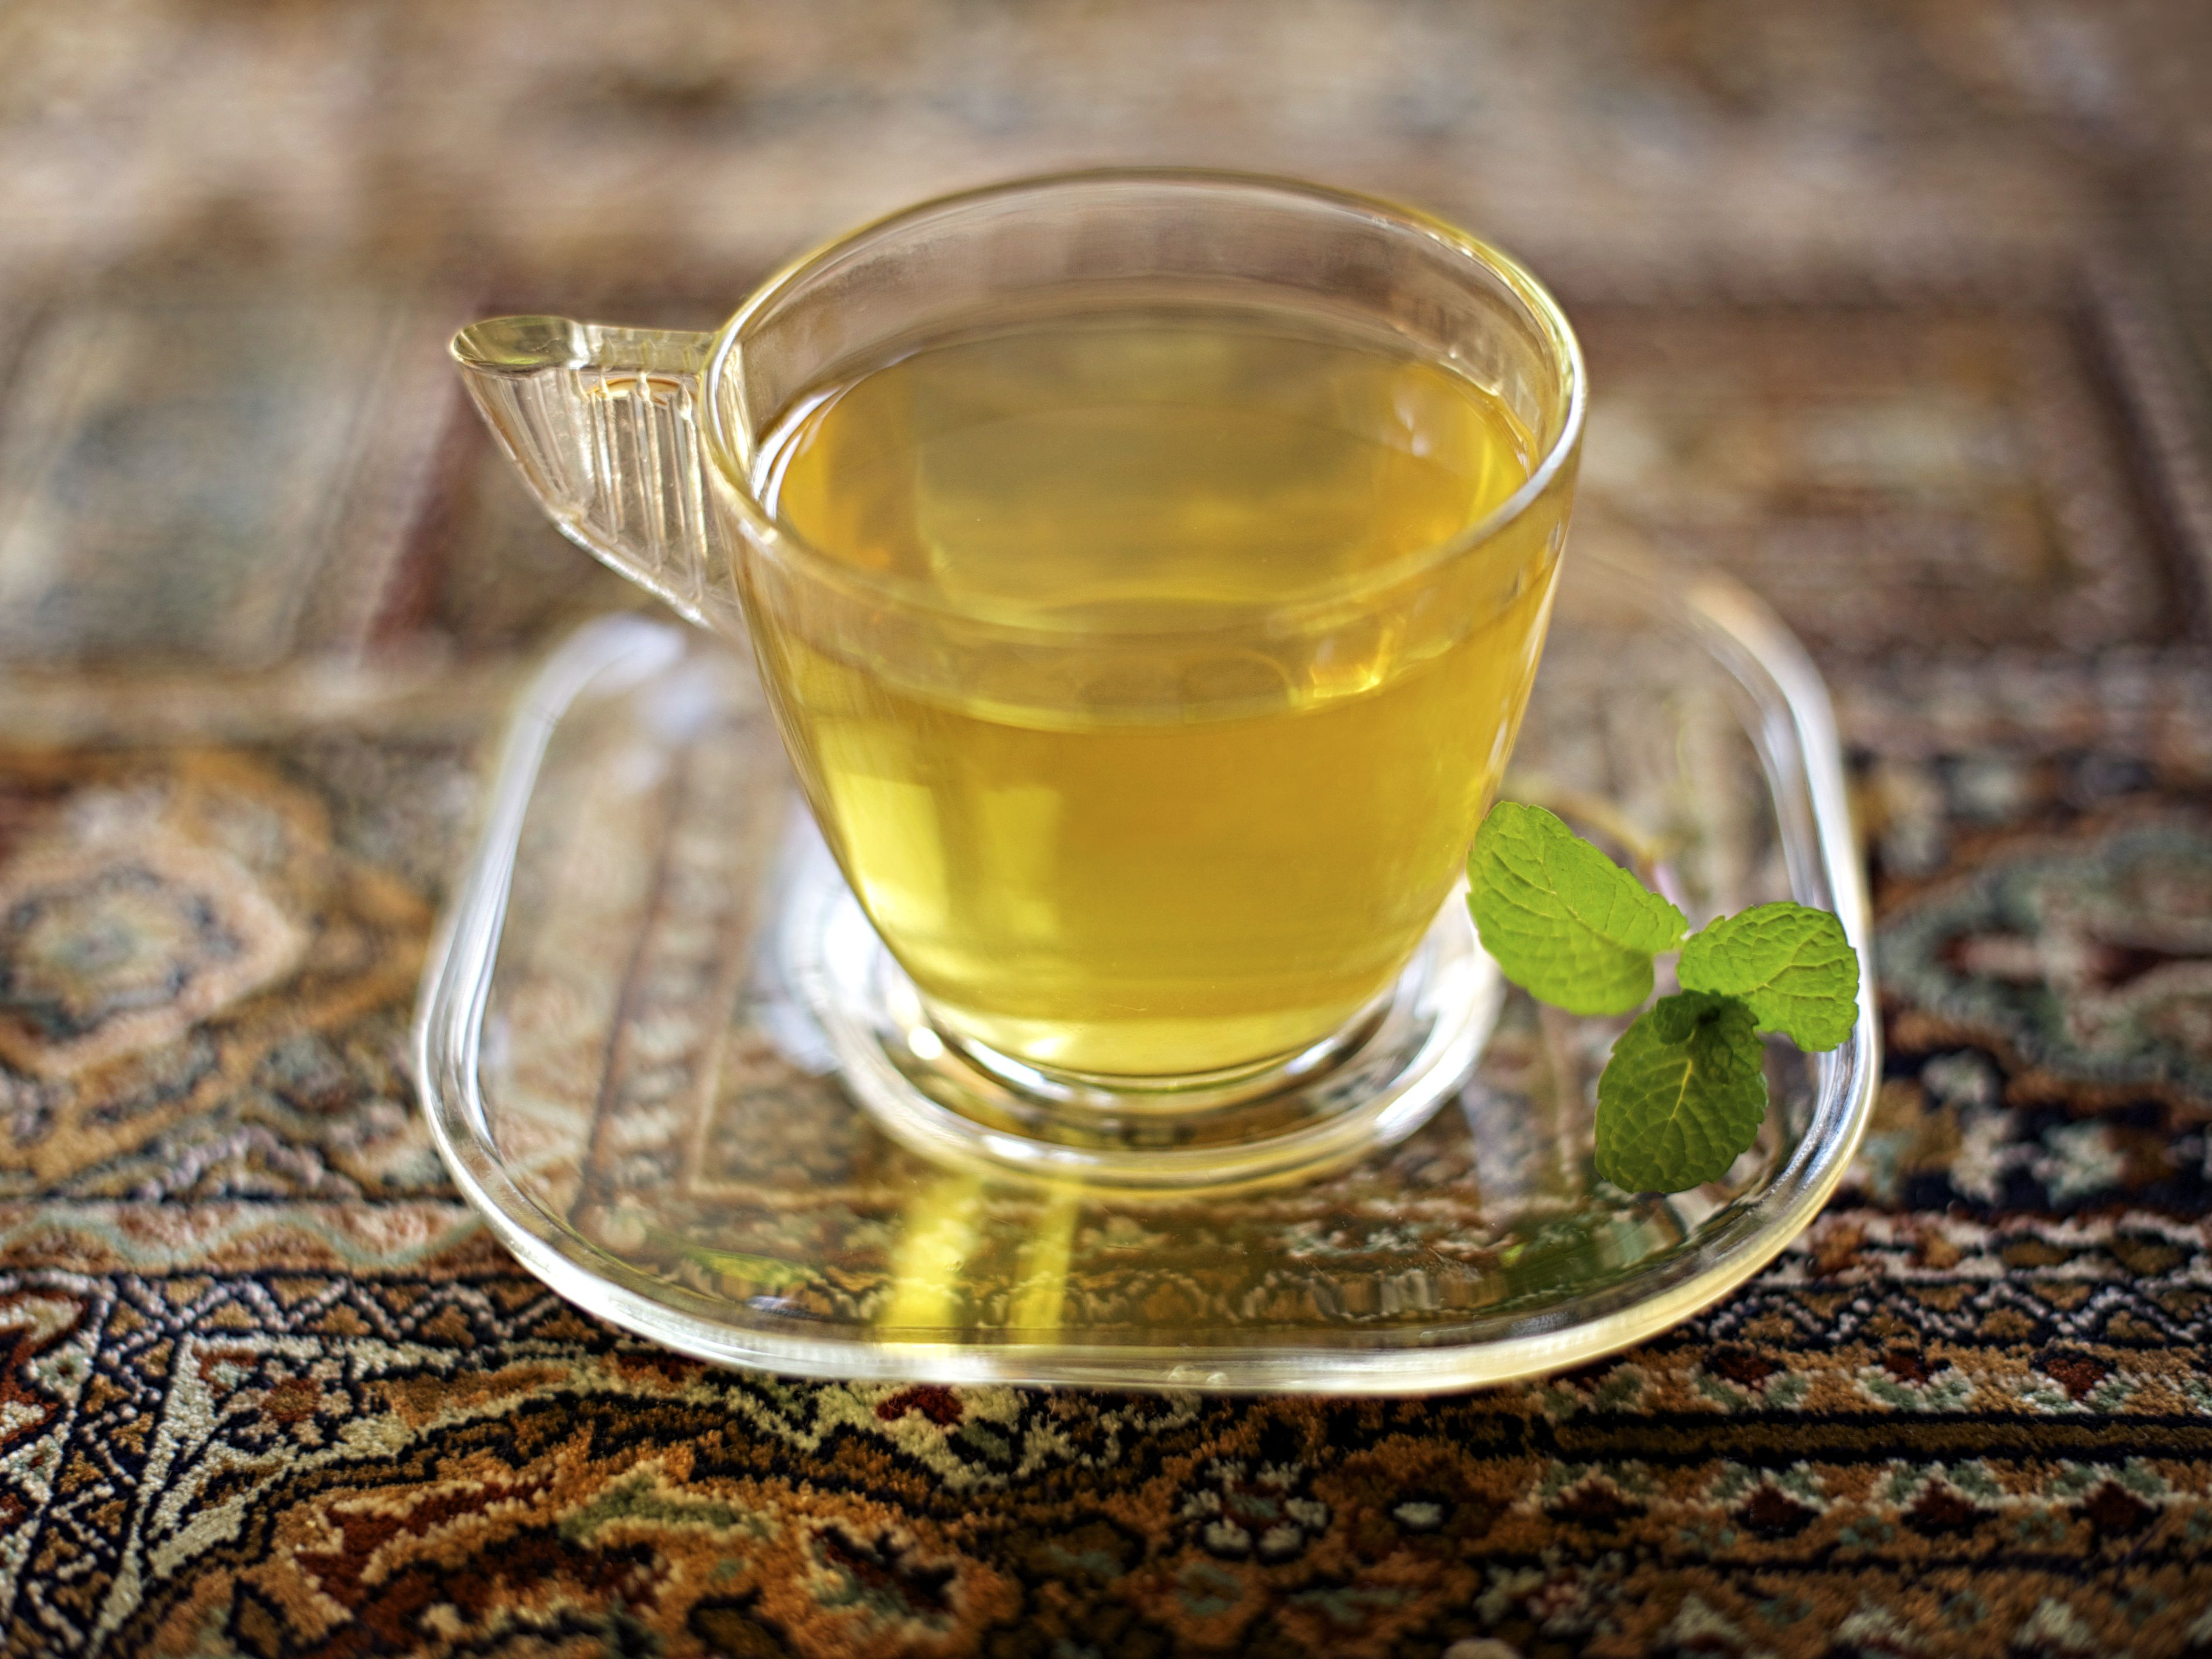 Peppermint and Other Herbal Teas for IBS Symptoms